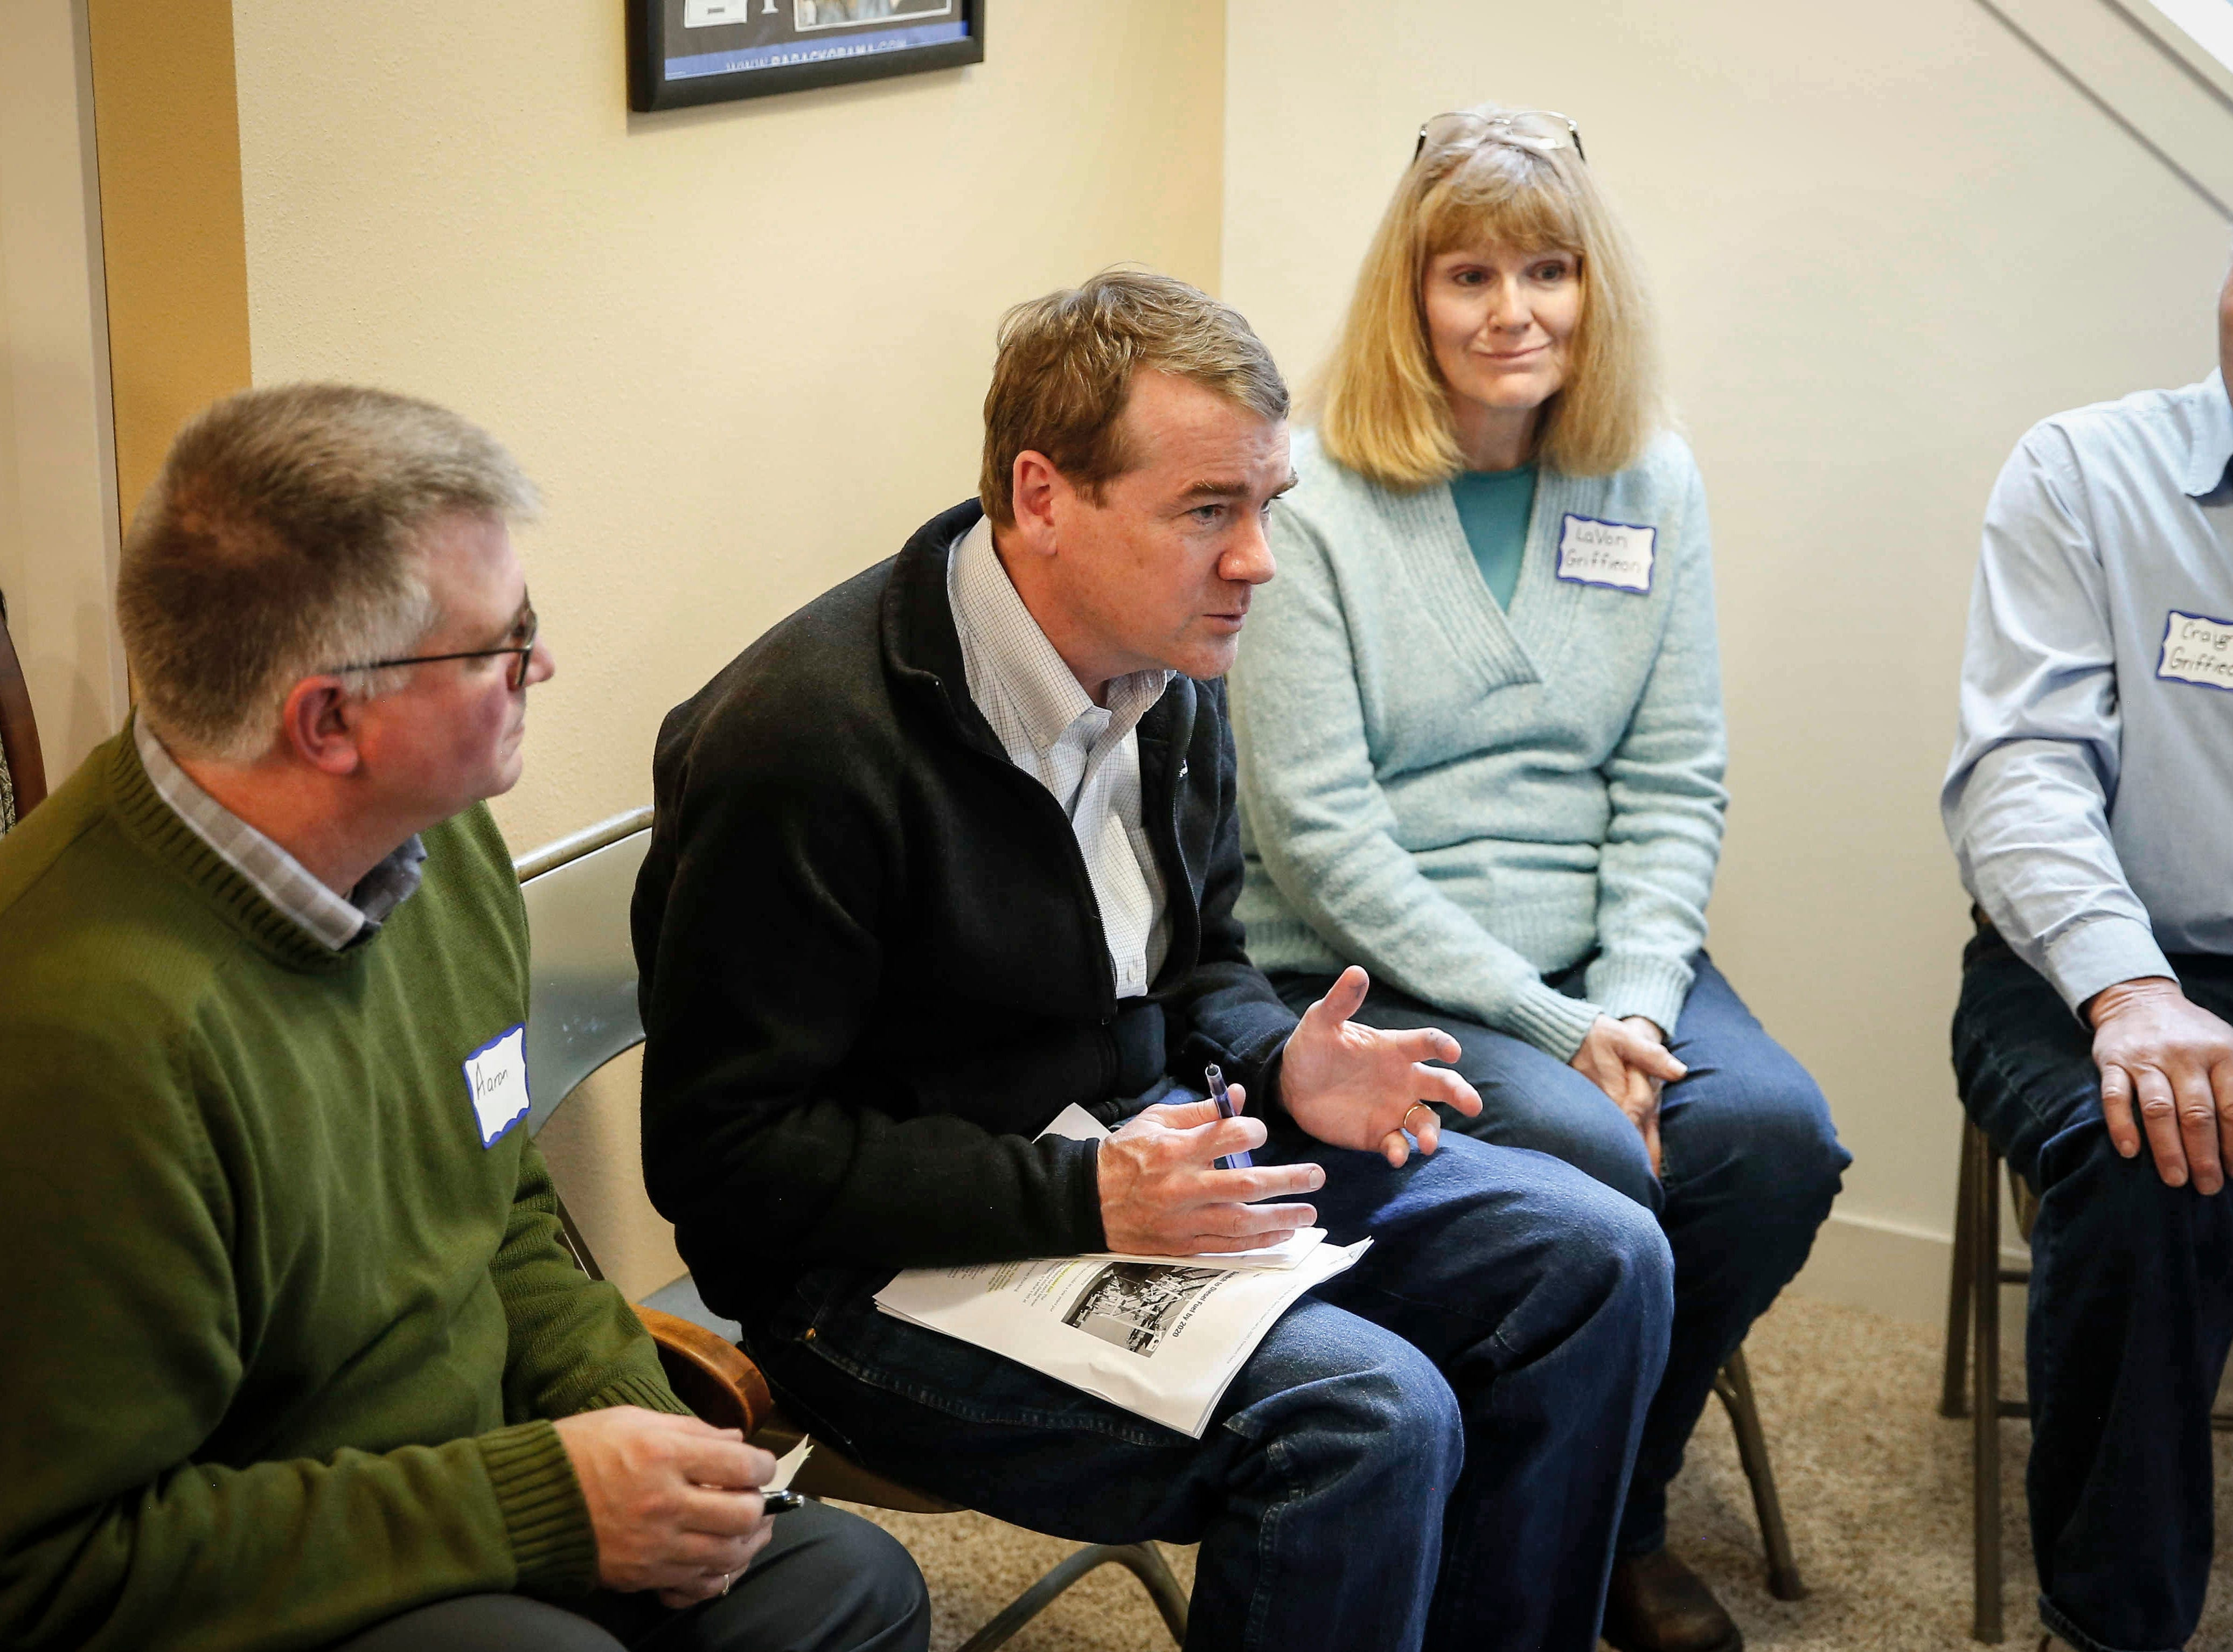 United States Sen. Michael Bennet from Colorado talks about subjects on the minds of rural Iowans on Saturday, Feb. 23, 2019, at the Lehman farm in rural Polk City.